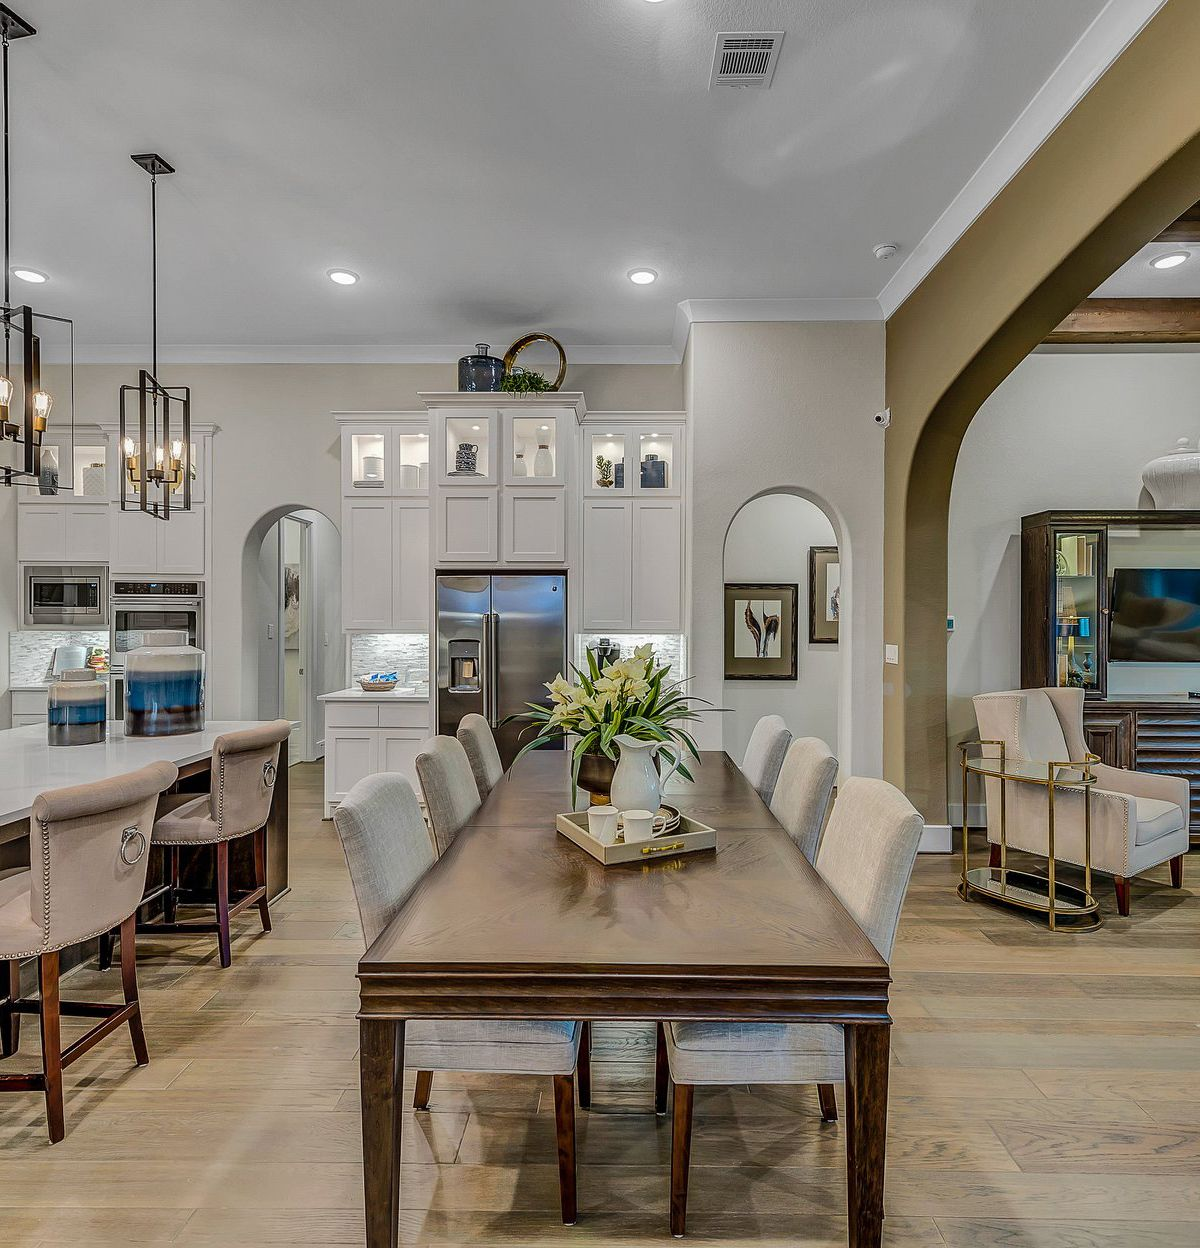 what's your favorite design element in this stunning open